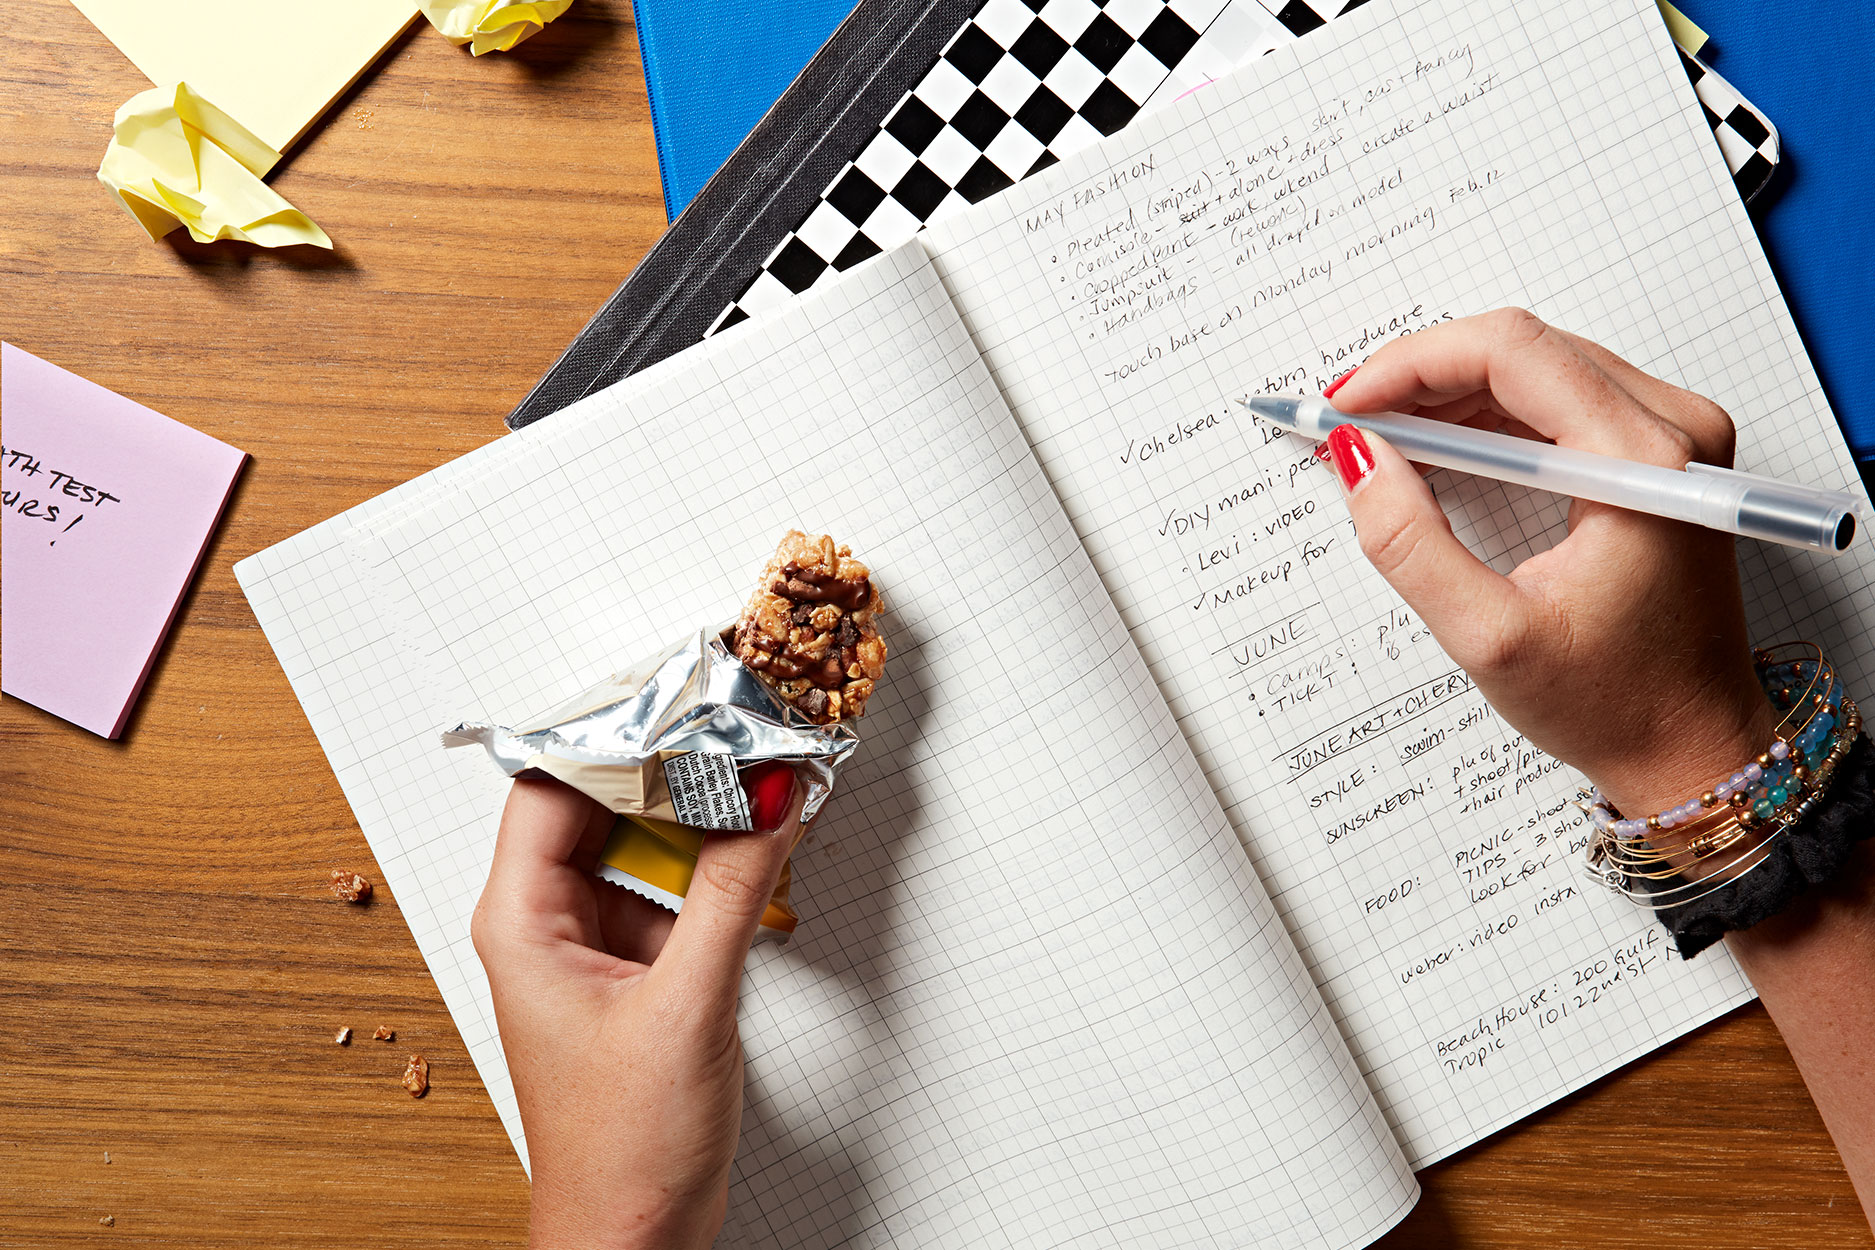 granola bar and writing in notebook